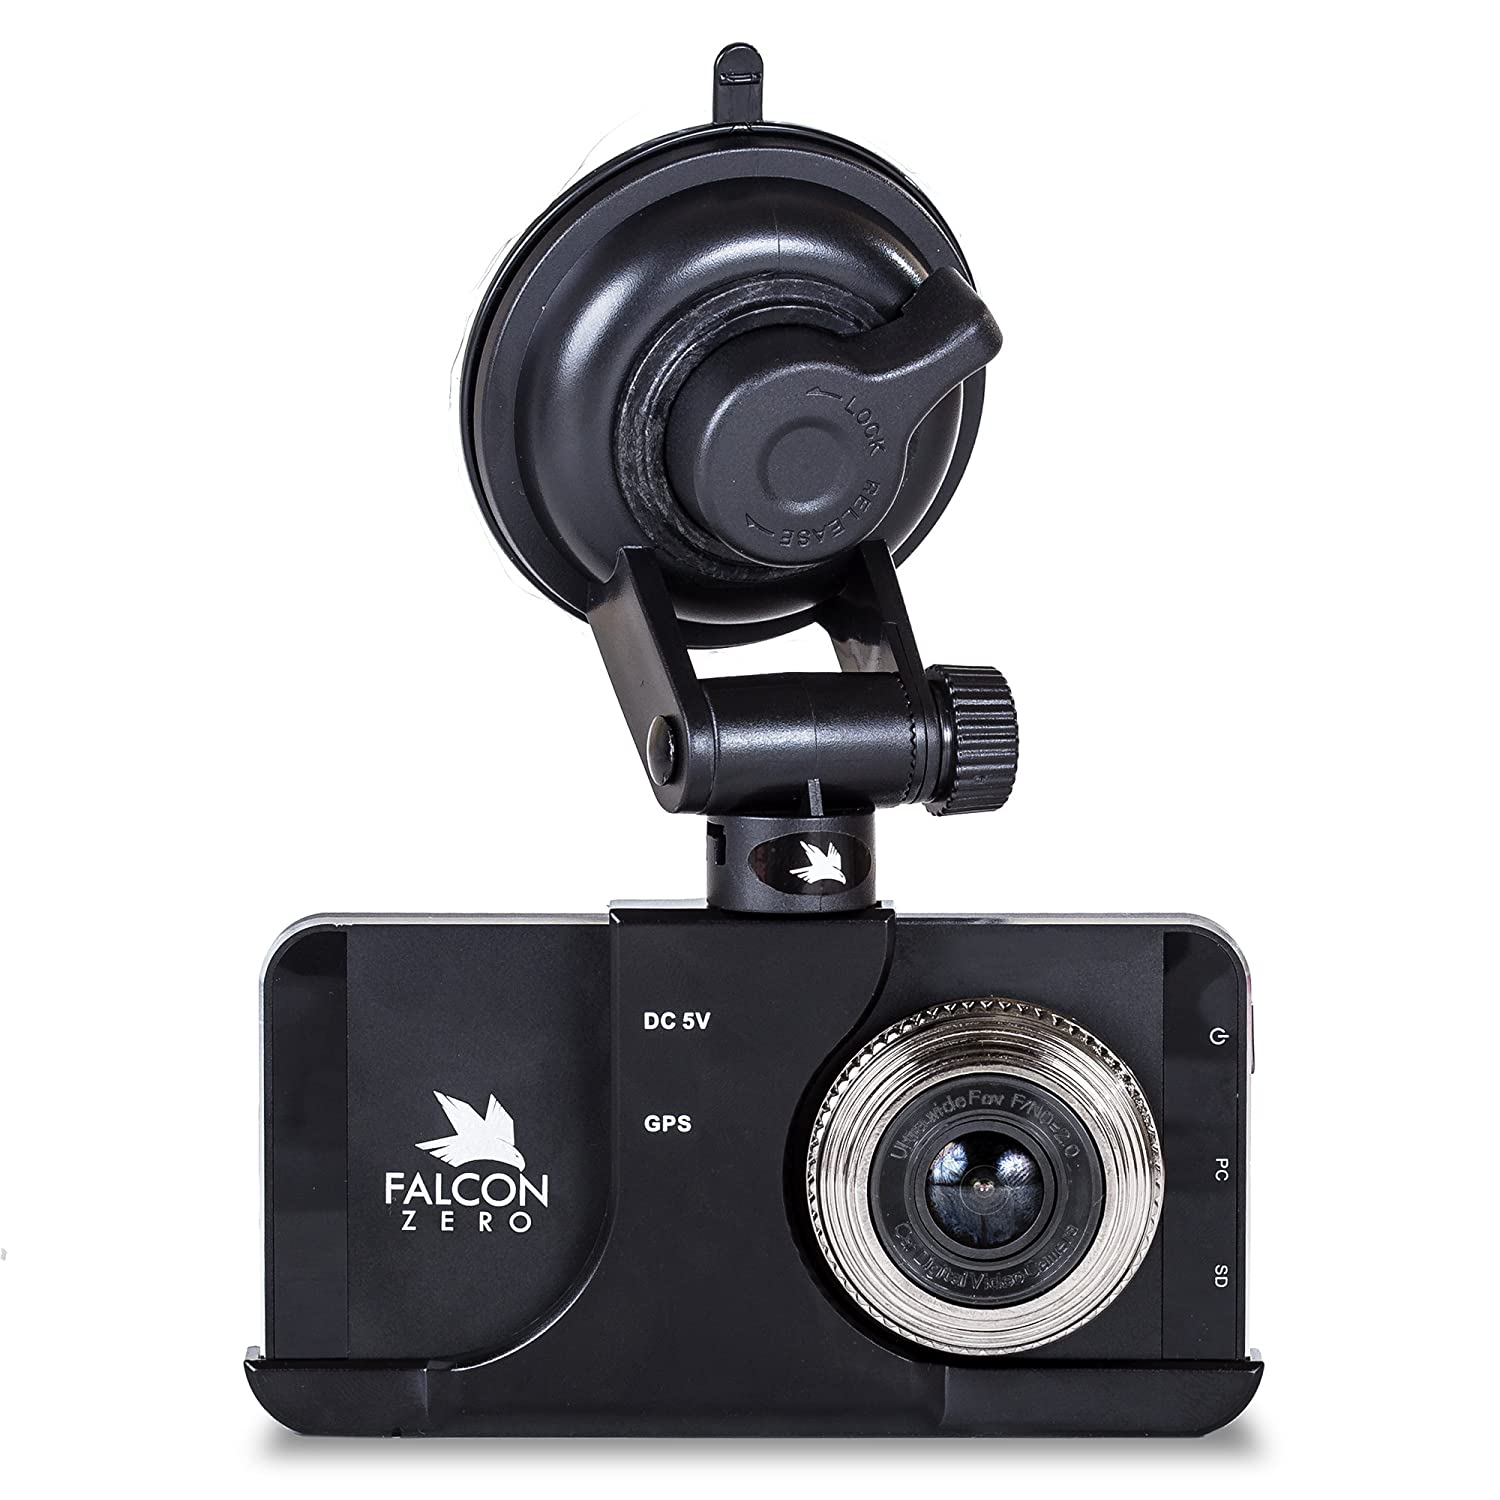 10 best car dash cam recorders car dashboard video cameras buying guide herstylecode 1 10 Best Car Dash Cam Recorders - Car Dashboard Video Cameras Buying Guide